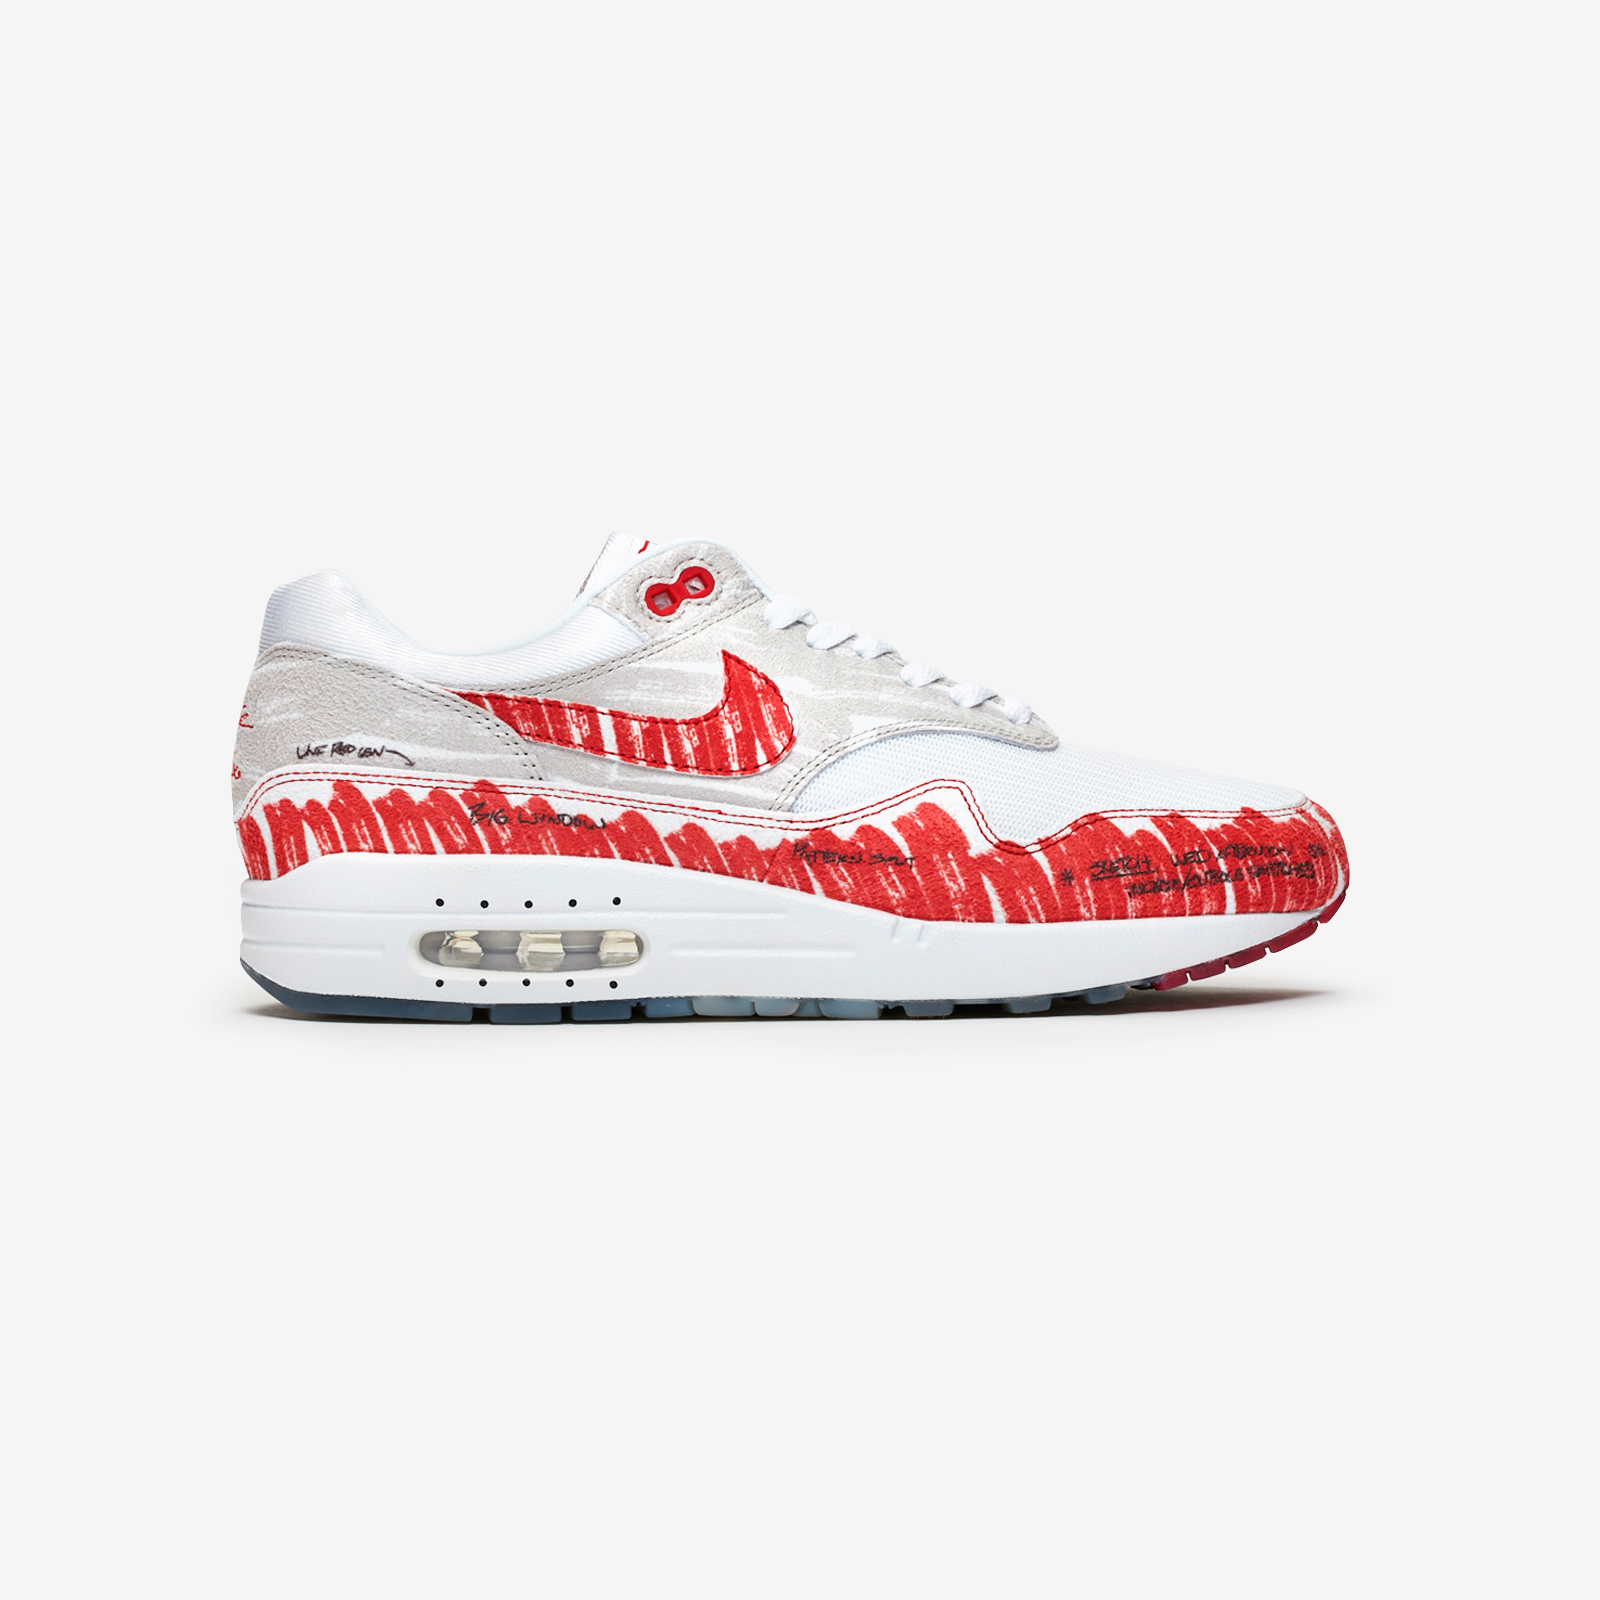 134058ed Nike Air Max 1 Sketch To Shelf - Cj4286-101 - Sneakersnstuff ...